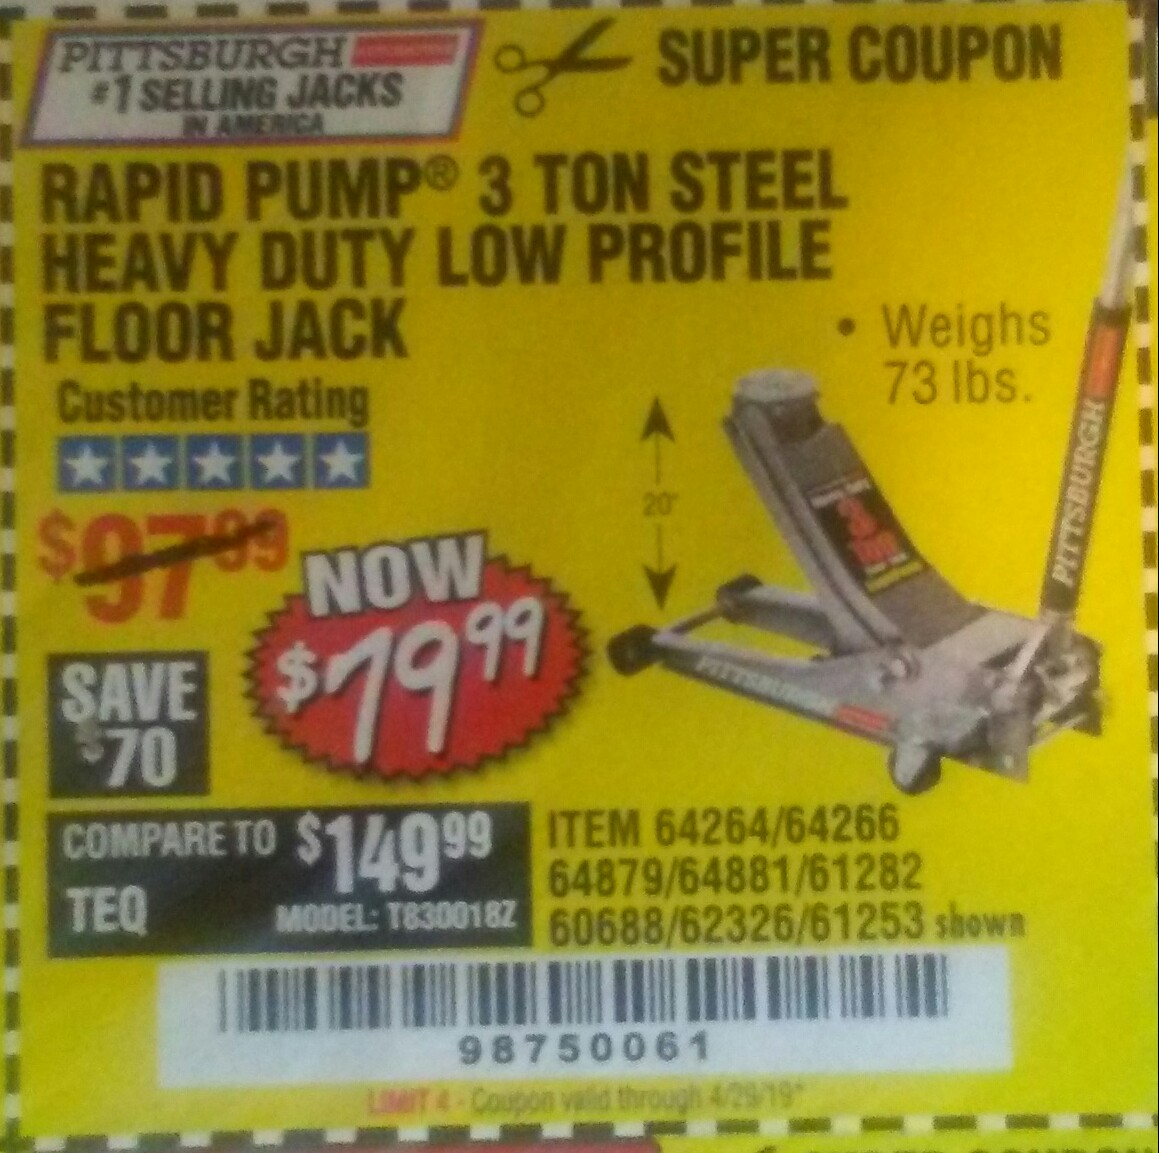 Harbor Freight Coupon, HF Coupons - 3 ton low profile floor Jack